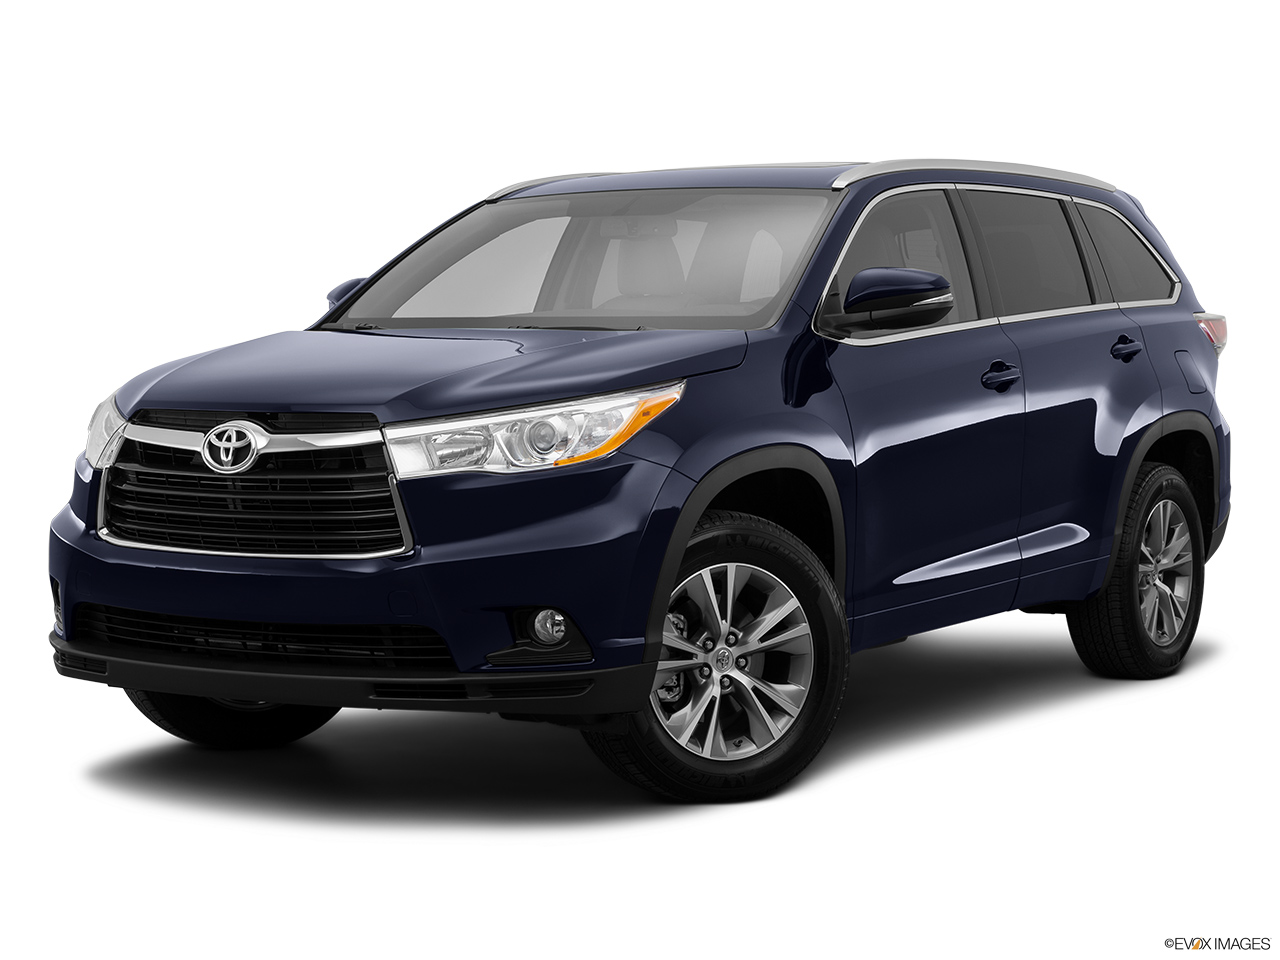 2015 Toyota Highlander Awd 4 Door V6 Xle Front Angle